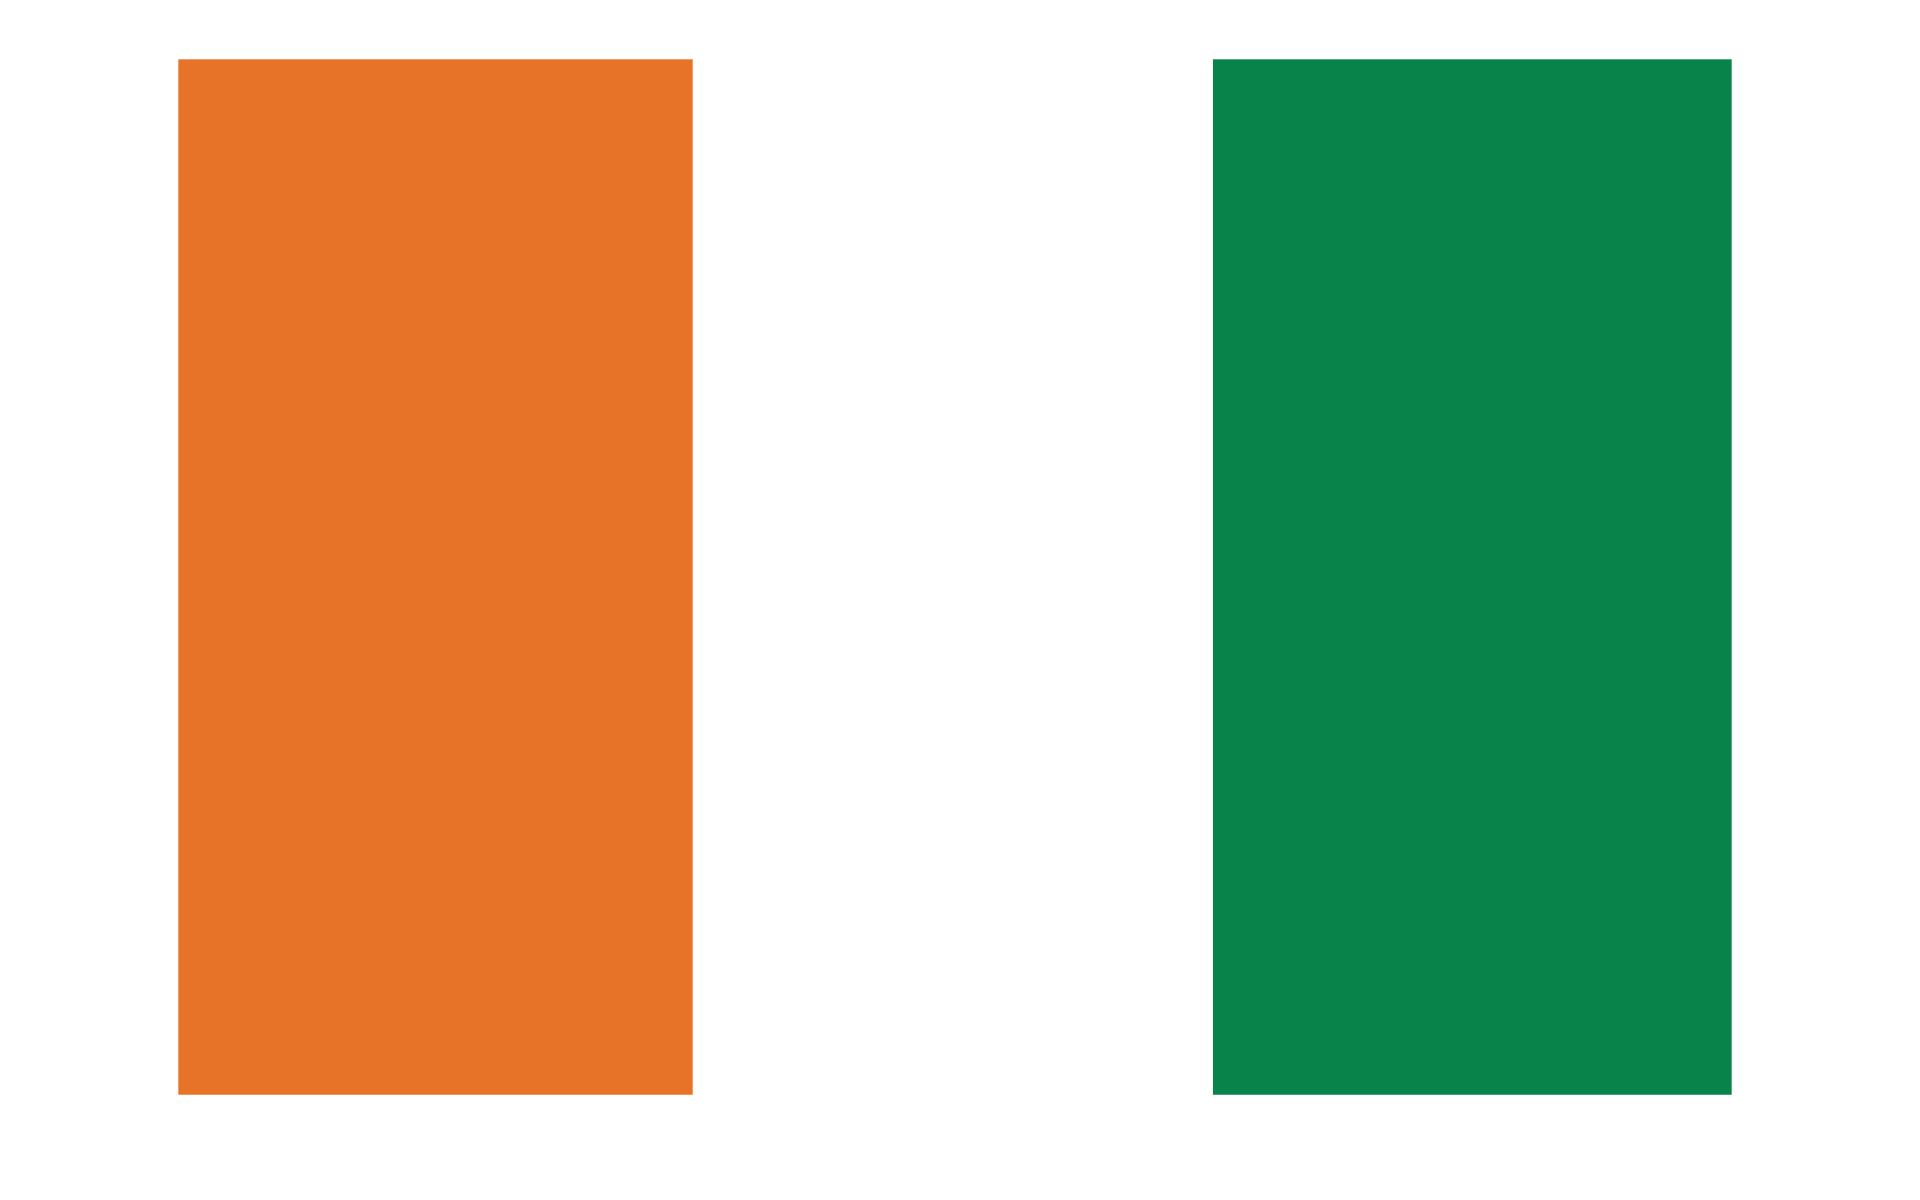 ivory-coast-png-download-ivory-coast-flag-png-images-transparent-gallery-advertisement-1920.png